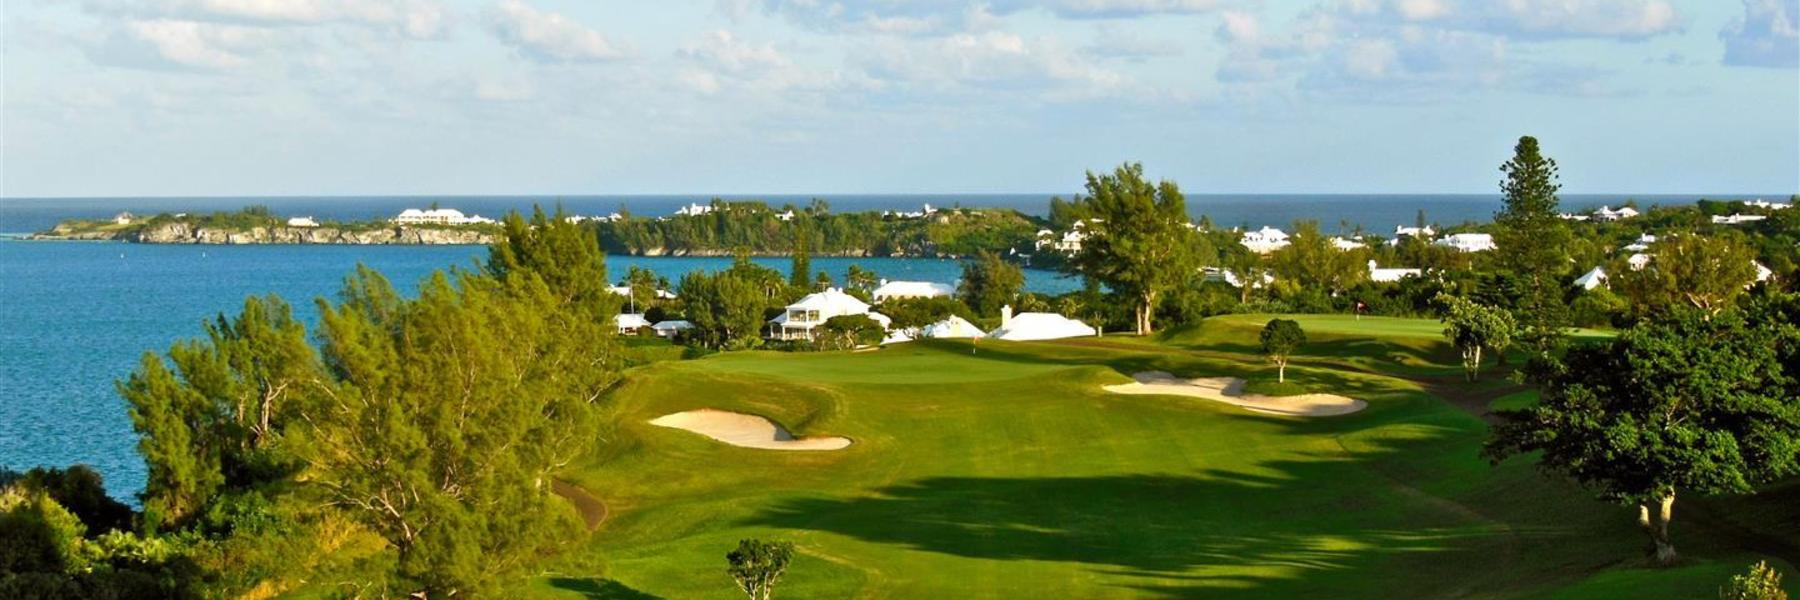 Golf Vacation Package - Fairmont Southampton Bermuda Golf Around Getaway for $277 per day!